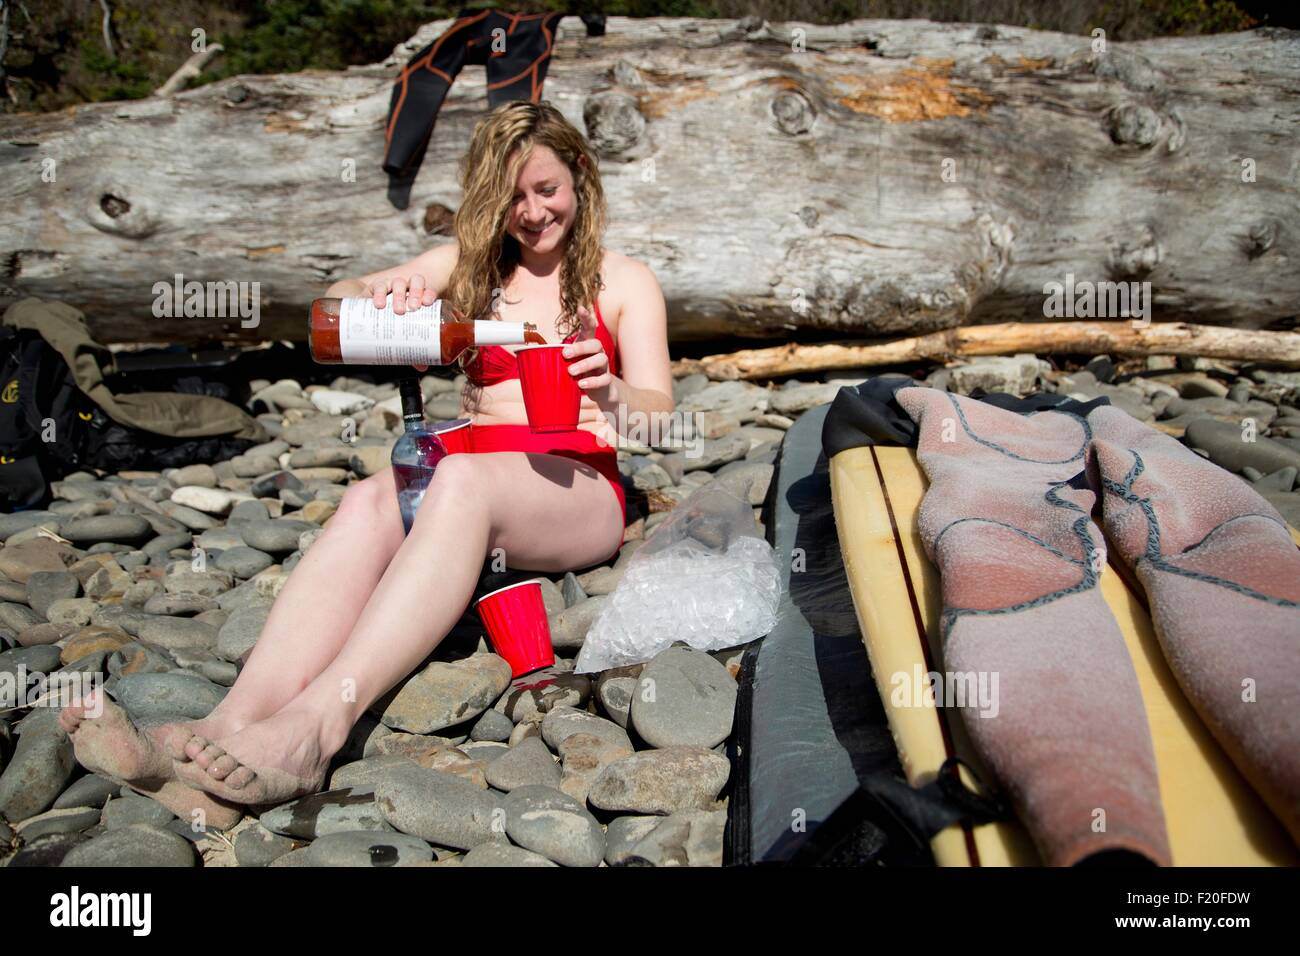 Young woman sitting on rocky beach, pouring drink, Short Sands Beach, Oregon, USA - Stock Image